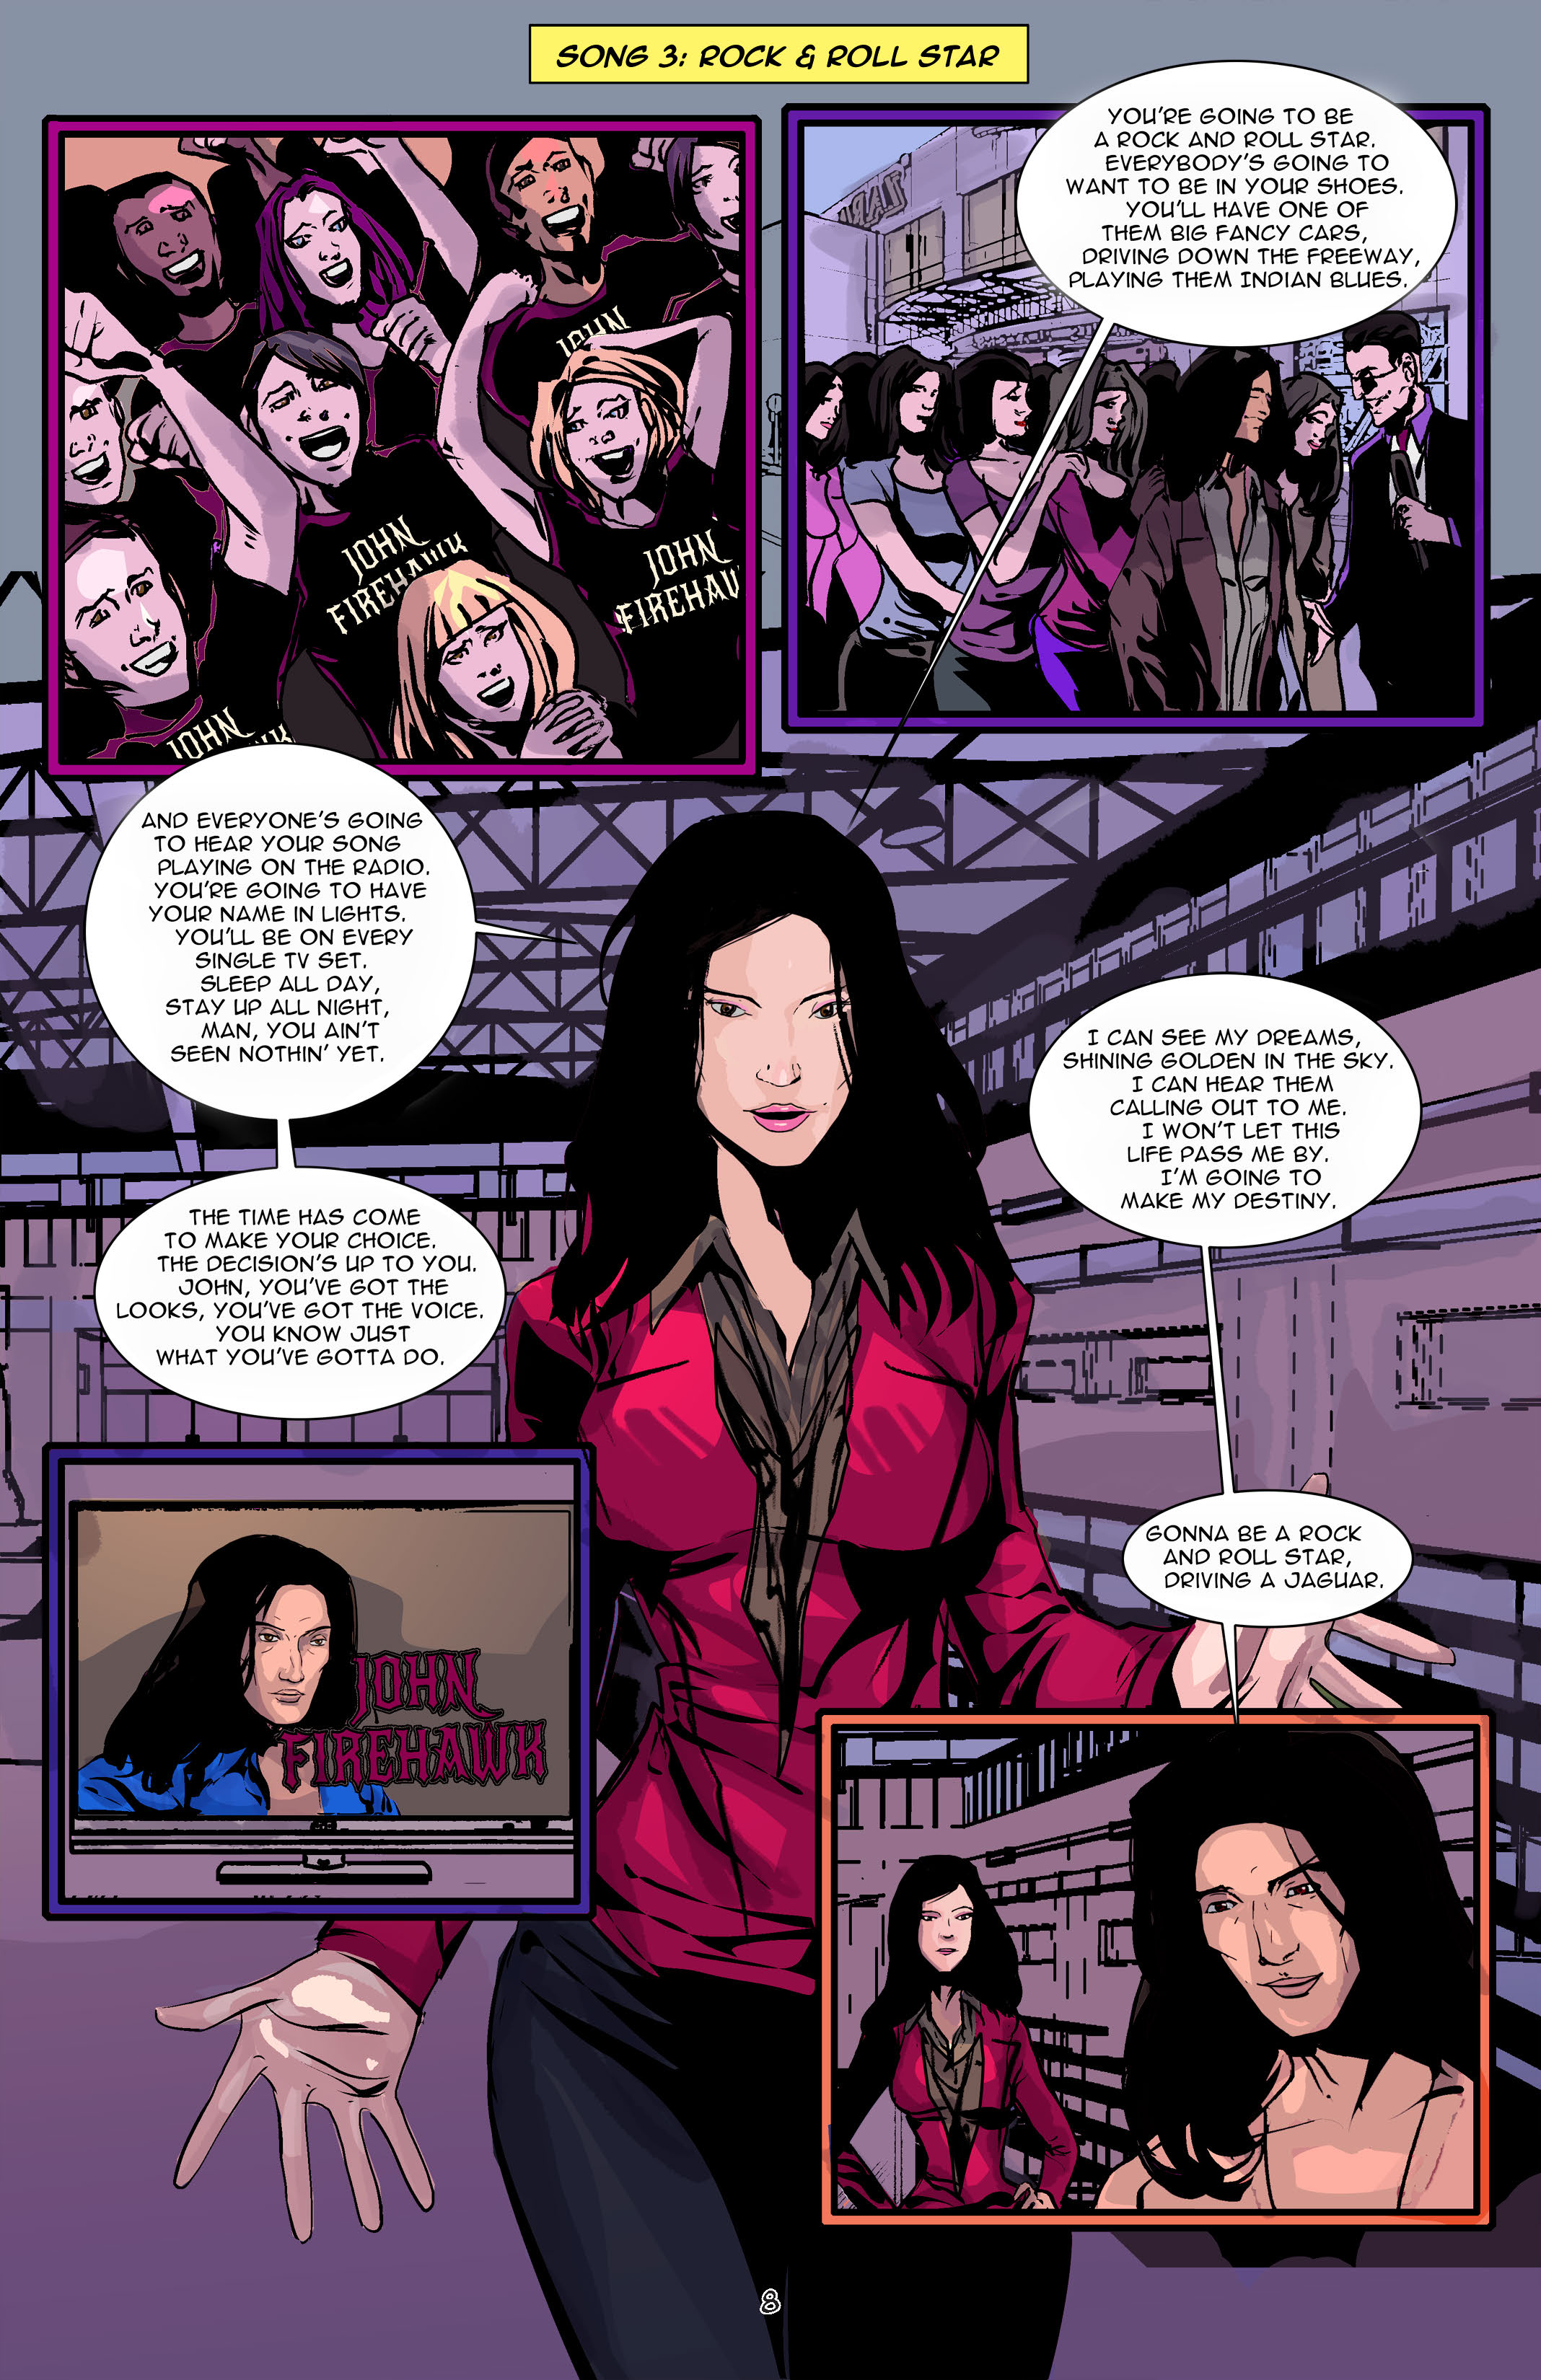 Dreamsinger Episode 2 Print final_Page_10